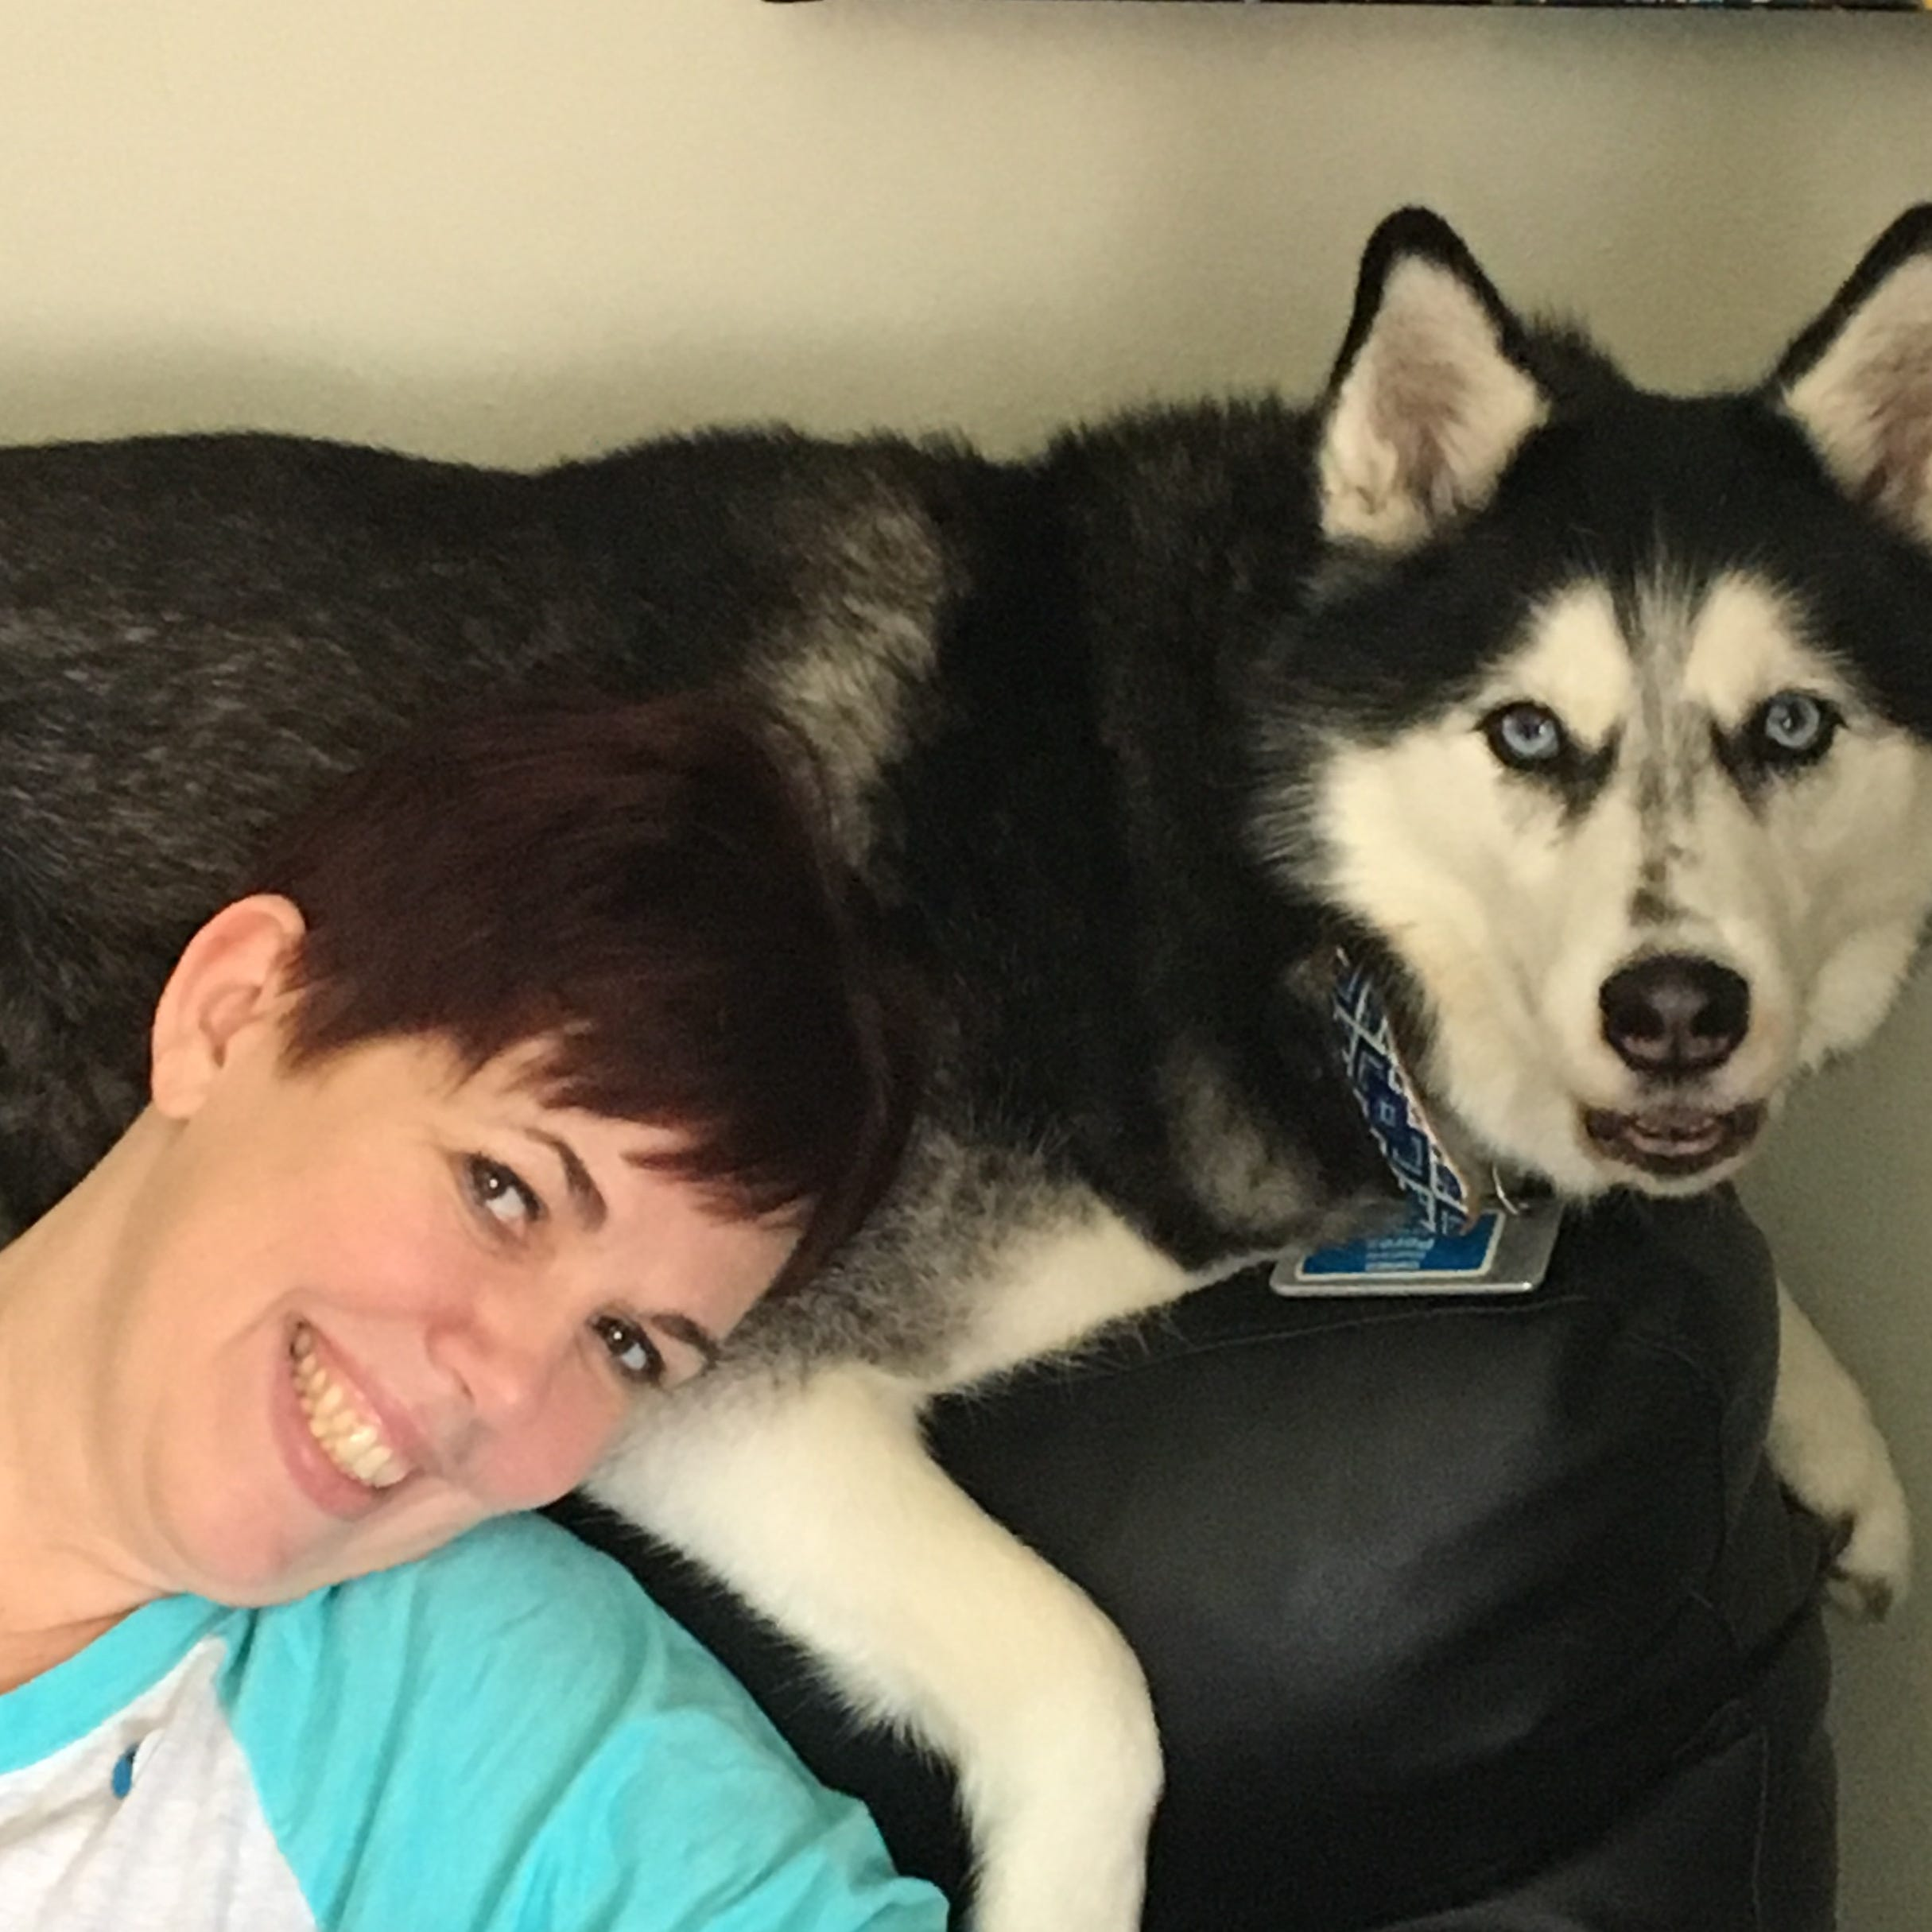 Stephanie Herfel relaxes with her Siberian husky, Sierra. The dog's nose detected a scent in Herfel's abdomen that was diagnosed to be ovarian cancer. Sierra acted strangely on two subsequent occasions, and both turned out to be reccurrences of cancer.